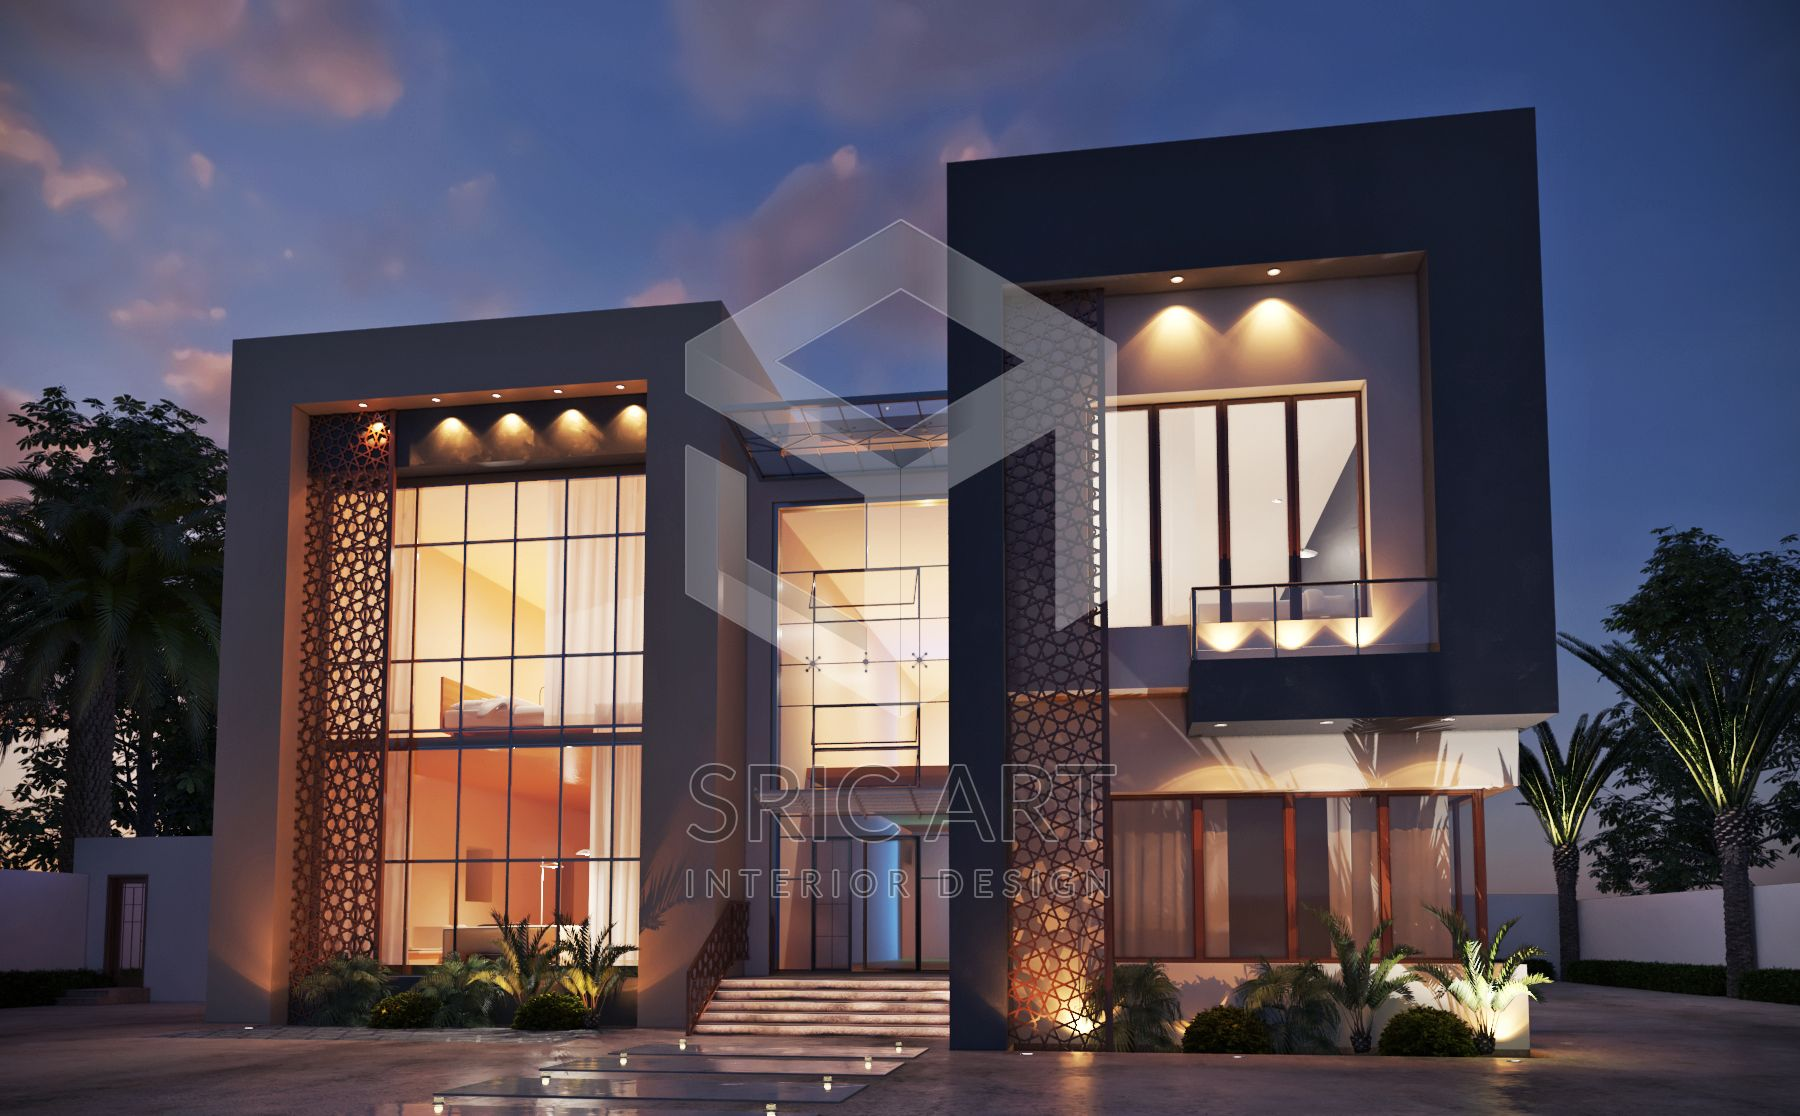 External Design Villa Design Interior Design Decoration Villa External Design 3d Design Sric Art Sri Villa Design Palace Interior Exterior Design